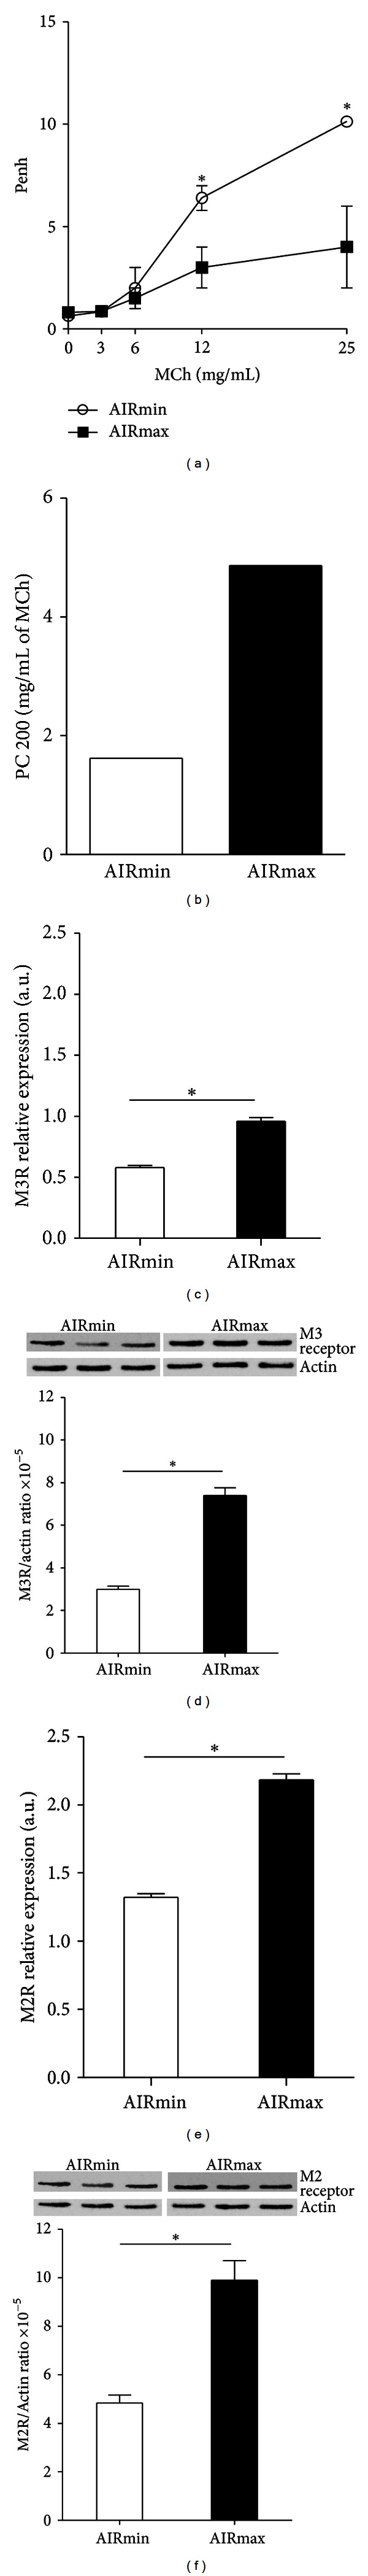 Respiratory pattern and expression of muscarinic receptors in AIRmin and AIRmax mice. Respiratory pattern was determined in awake, unrestrained mice by noninvasive whole-body barometric plethysmography. (a) Penh values were used as an index of bronchoconstriction induced after sequential delivery of increasing concentrations of MCh (3, 6, 12, and 25 mg/mL) and (b) provocative concentration of aerosol MCh at a 200% increase (PC200) over baseline values. Gene (c and e) or protein (d and f) expression of M2 and M3 muscarinic receptors was evaluated by real-time PCR or Western blot analysis in lungs from AIRmin and AIRmax mice. Real-time PCR was carried out using  β -actin gene expression as internal control for normalization of M3R (c) and M2R (e) mRNA transcription levels. All PCR reactions were quantitative reactions made by real-time PCR. In Western blot analysis the density of M3R (d) and M2R (f) protein expression was nor aerosol at a malized to actin expression in each sample. Western blots were quantified by densitometry using the ImageJ software (NIH). Real-time PCR and Western-blot analyses were performed using pooled lungs from 5 mice. Data are expressed as mean ± SEM of five mice per group and are representative of three experiments; * P